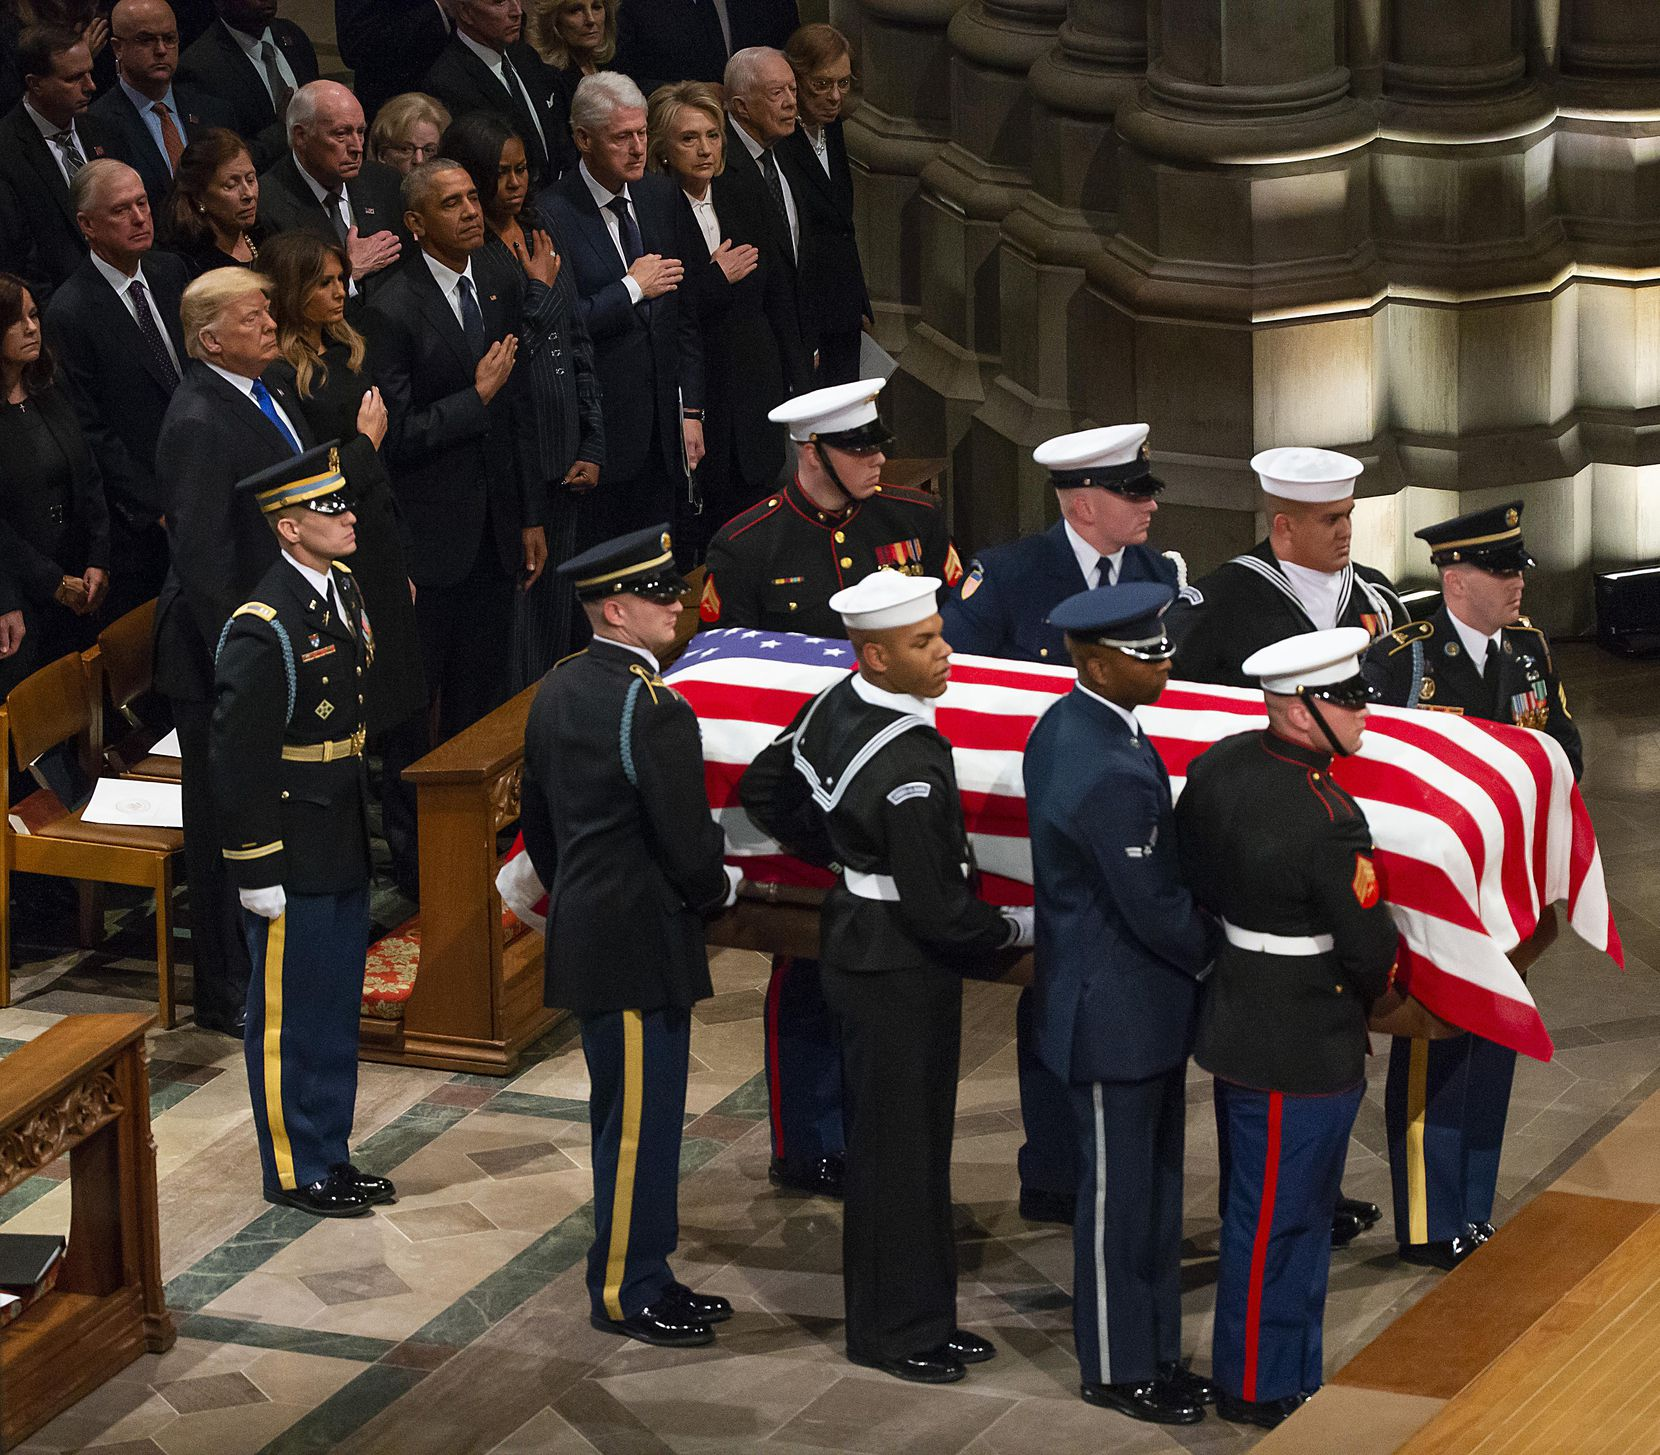 A military honor guard carries the flag-draped casket into the Washington National Cathedral past, from left, President Donald Trump, first lady Melania Trump, former President Barack Obama, Michelle Obama, former President Bill Clinton, former Secretary of State Hillary Clinton, former President Jimmy Carter, and Rosalynn Carter at the beginning of the State Funeral for George H.W. Bush, the 41st President of the United States, on Wednesday, Dec. 5, 2018, in Washington. (Smiley N. Pool/The Dallas Morning News)